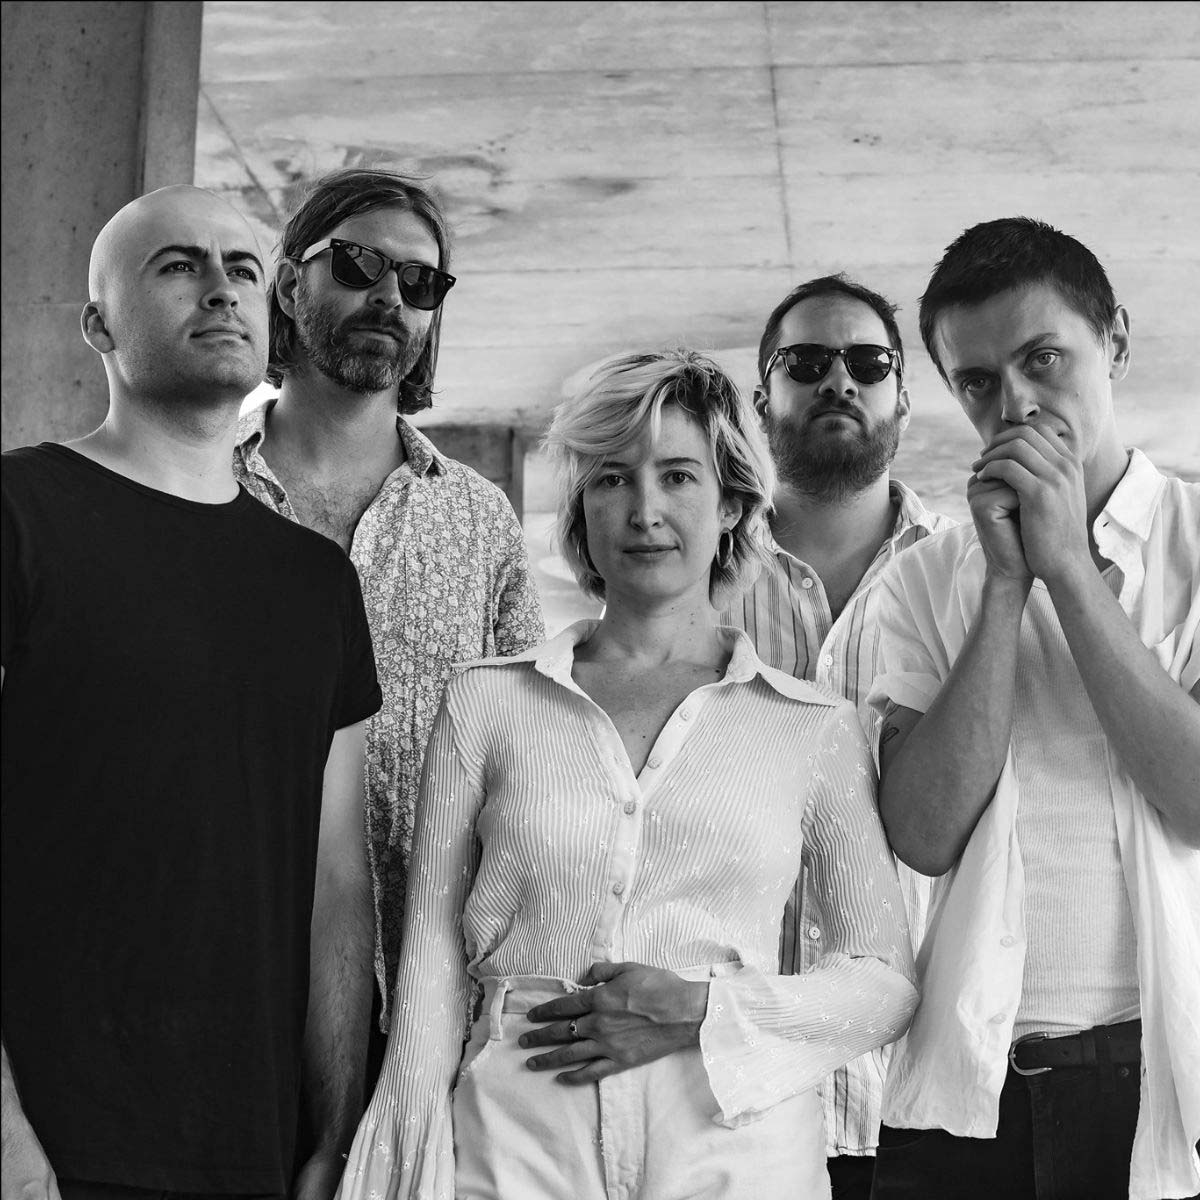 July Talk concert broadcast presented byCanadian Music Week and The INDIES